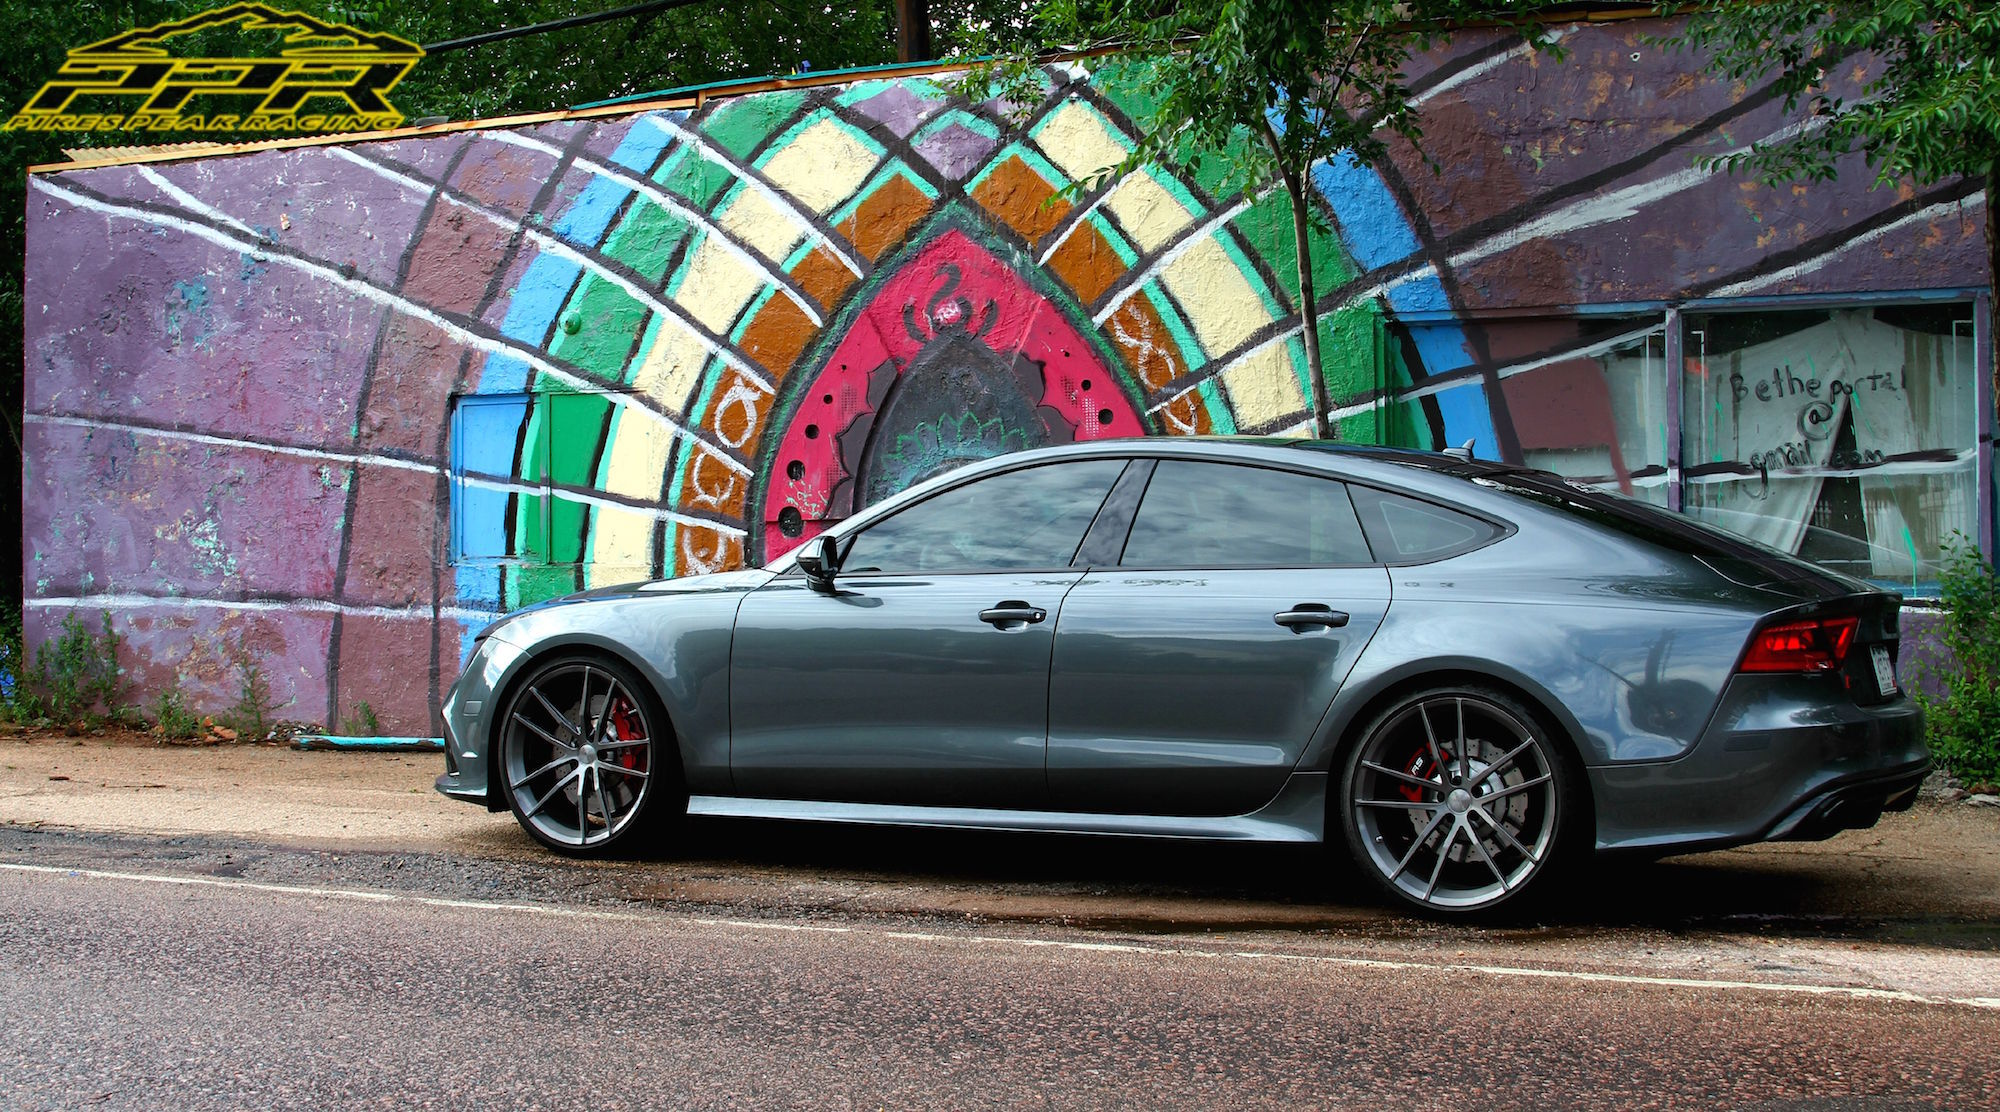 2014 Audi RS7 | Audi RS7 on Forgeline AR1 Wheels